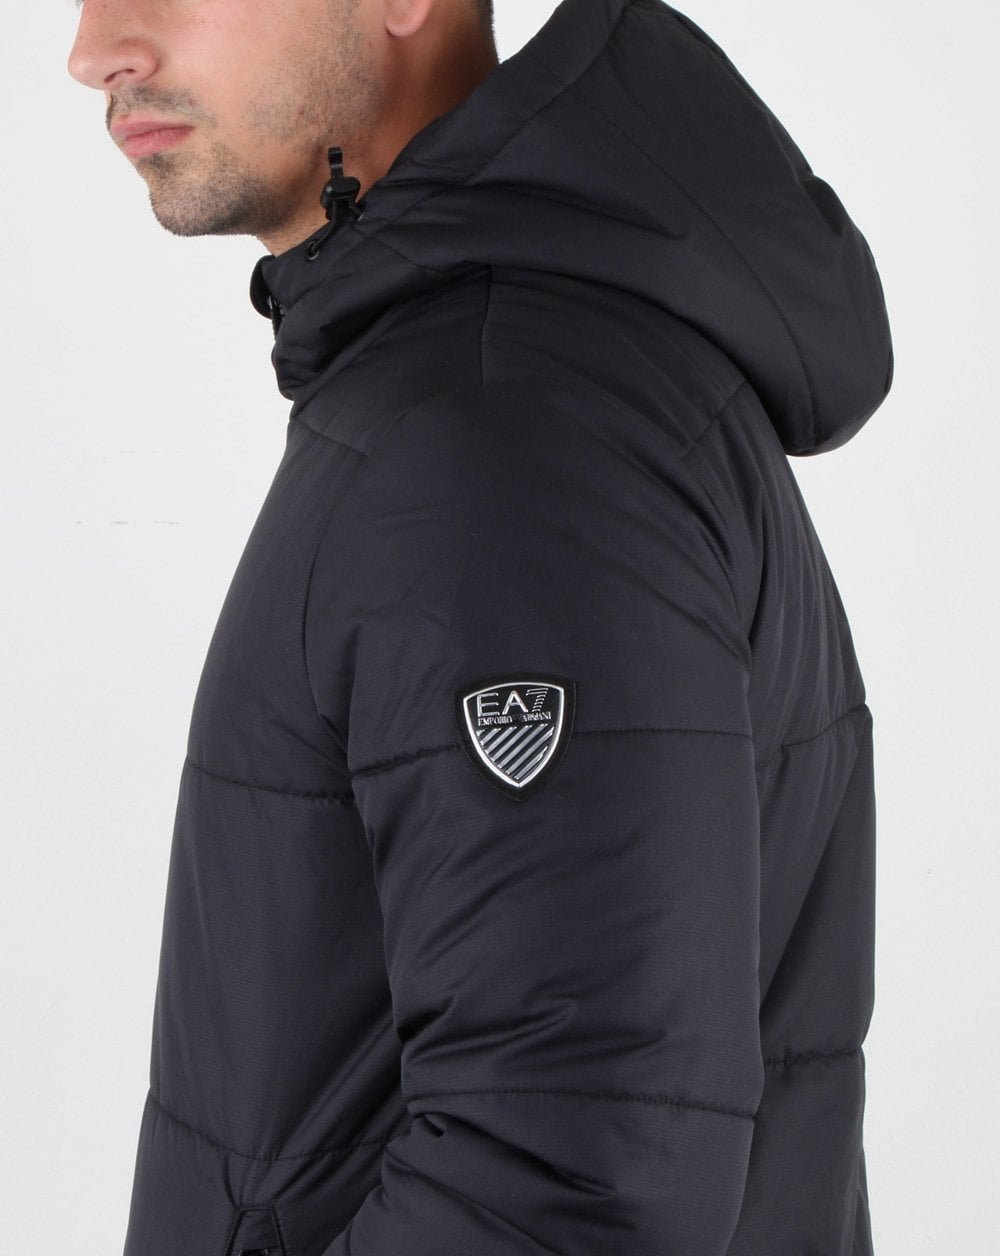 distinctive style best service hot sales Emporio Armani EA7 Puffer Jacket Charcoal